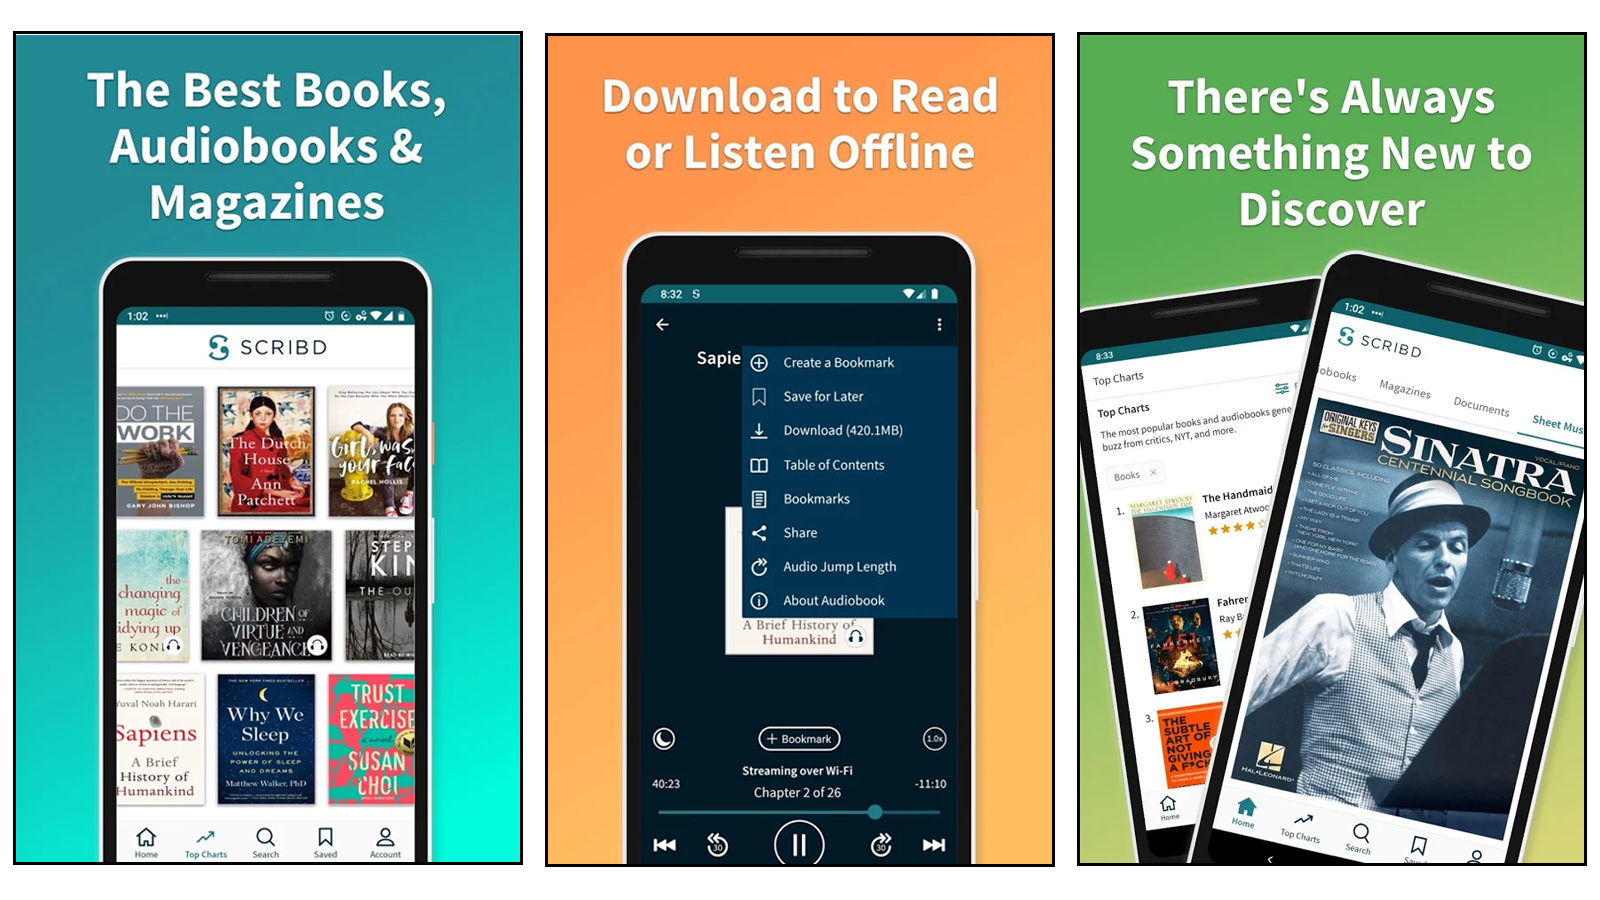 Scribd magazine selection, offline functionality, and library